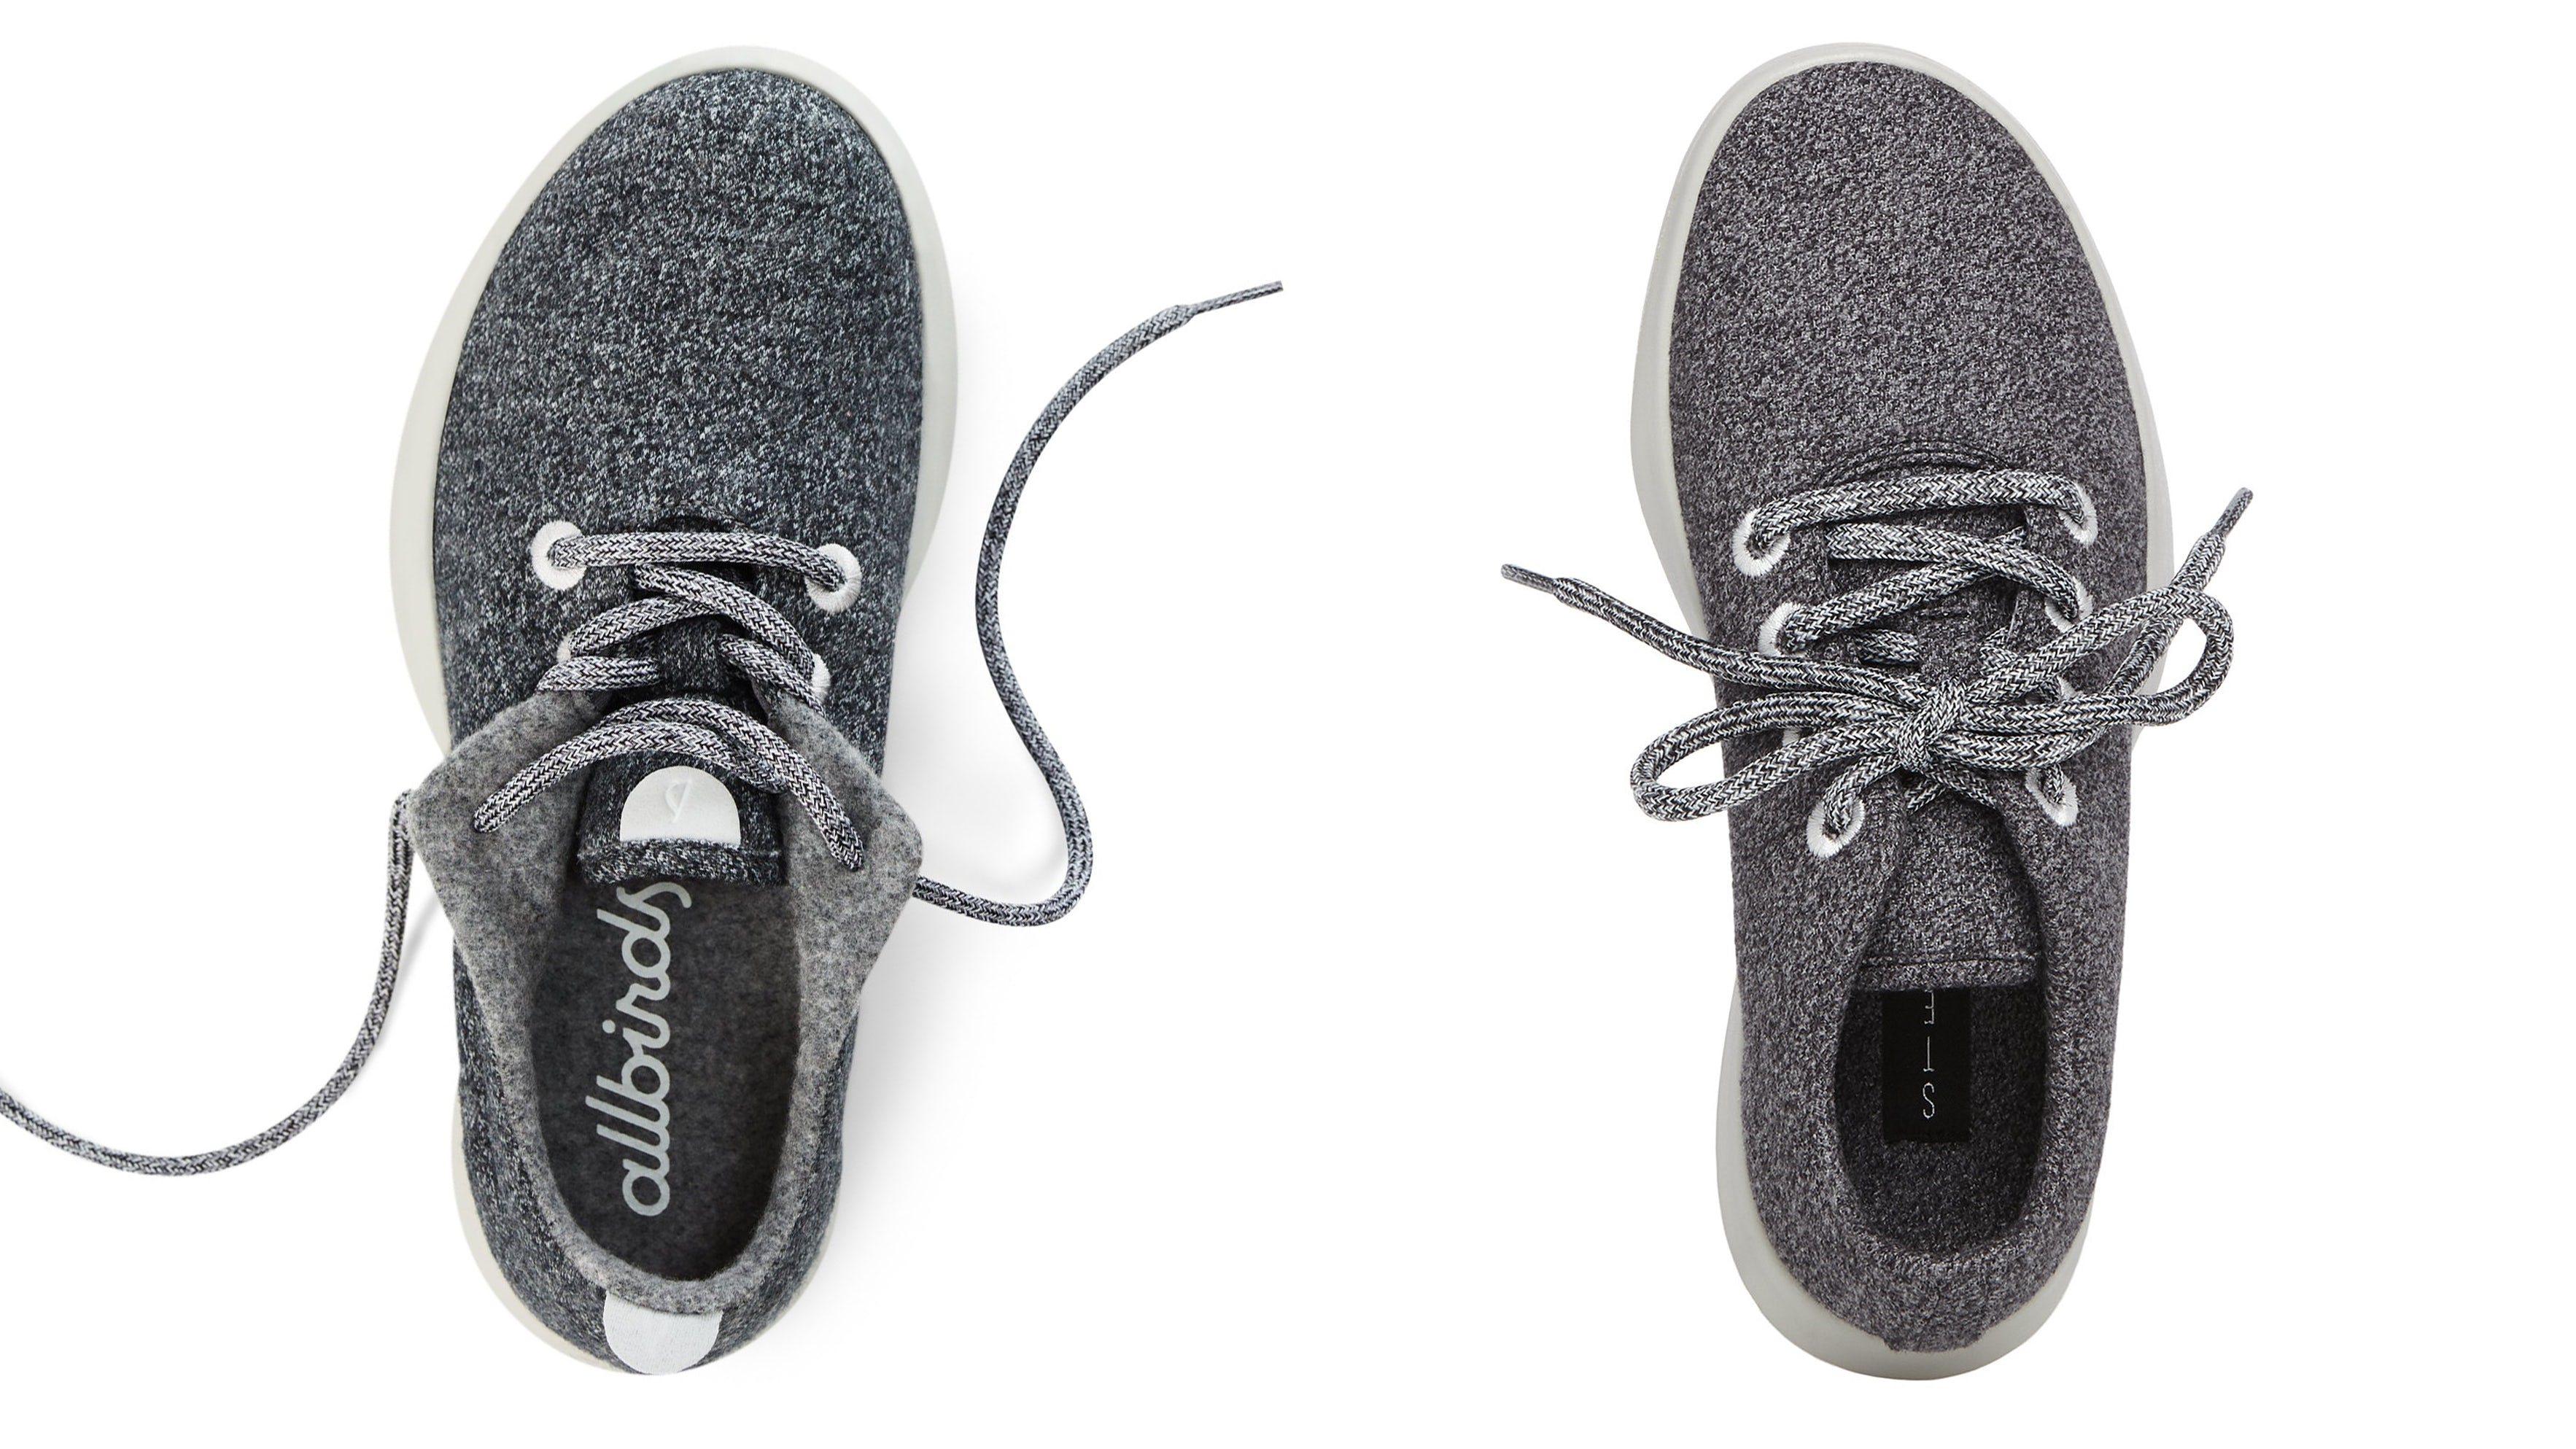 The Allbirds wool runner (left) and Steve by Steve Madden women's traveler  sneaker (